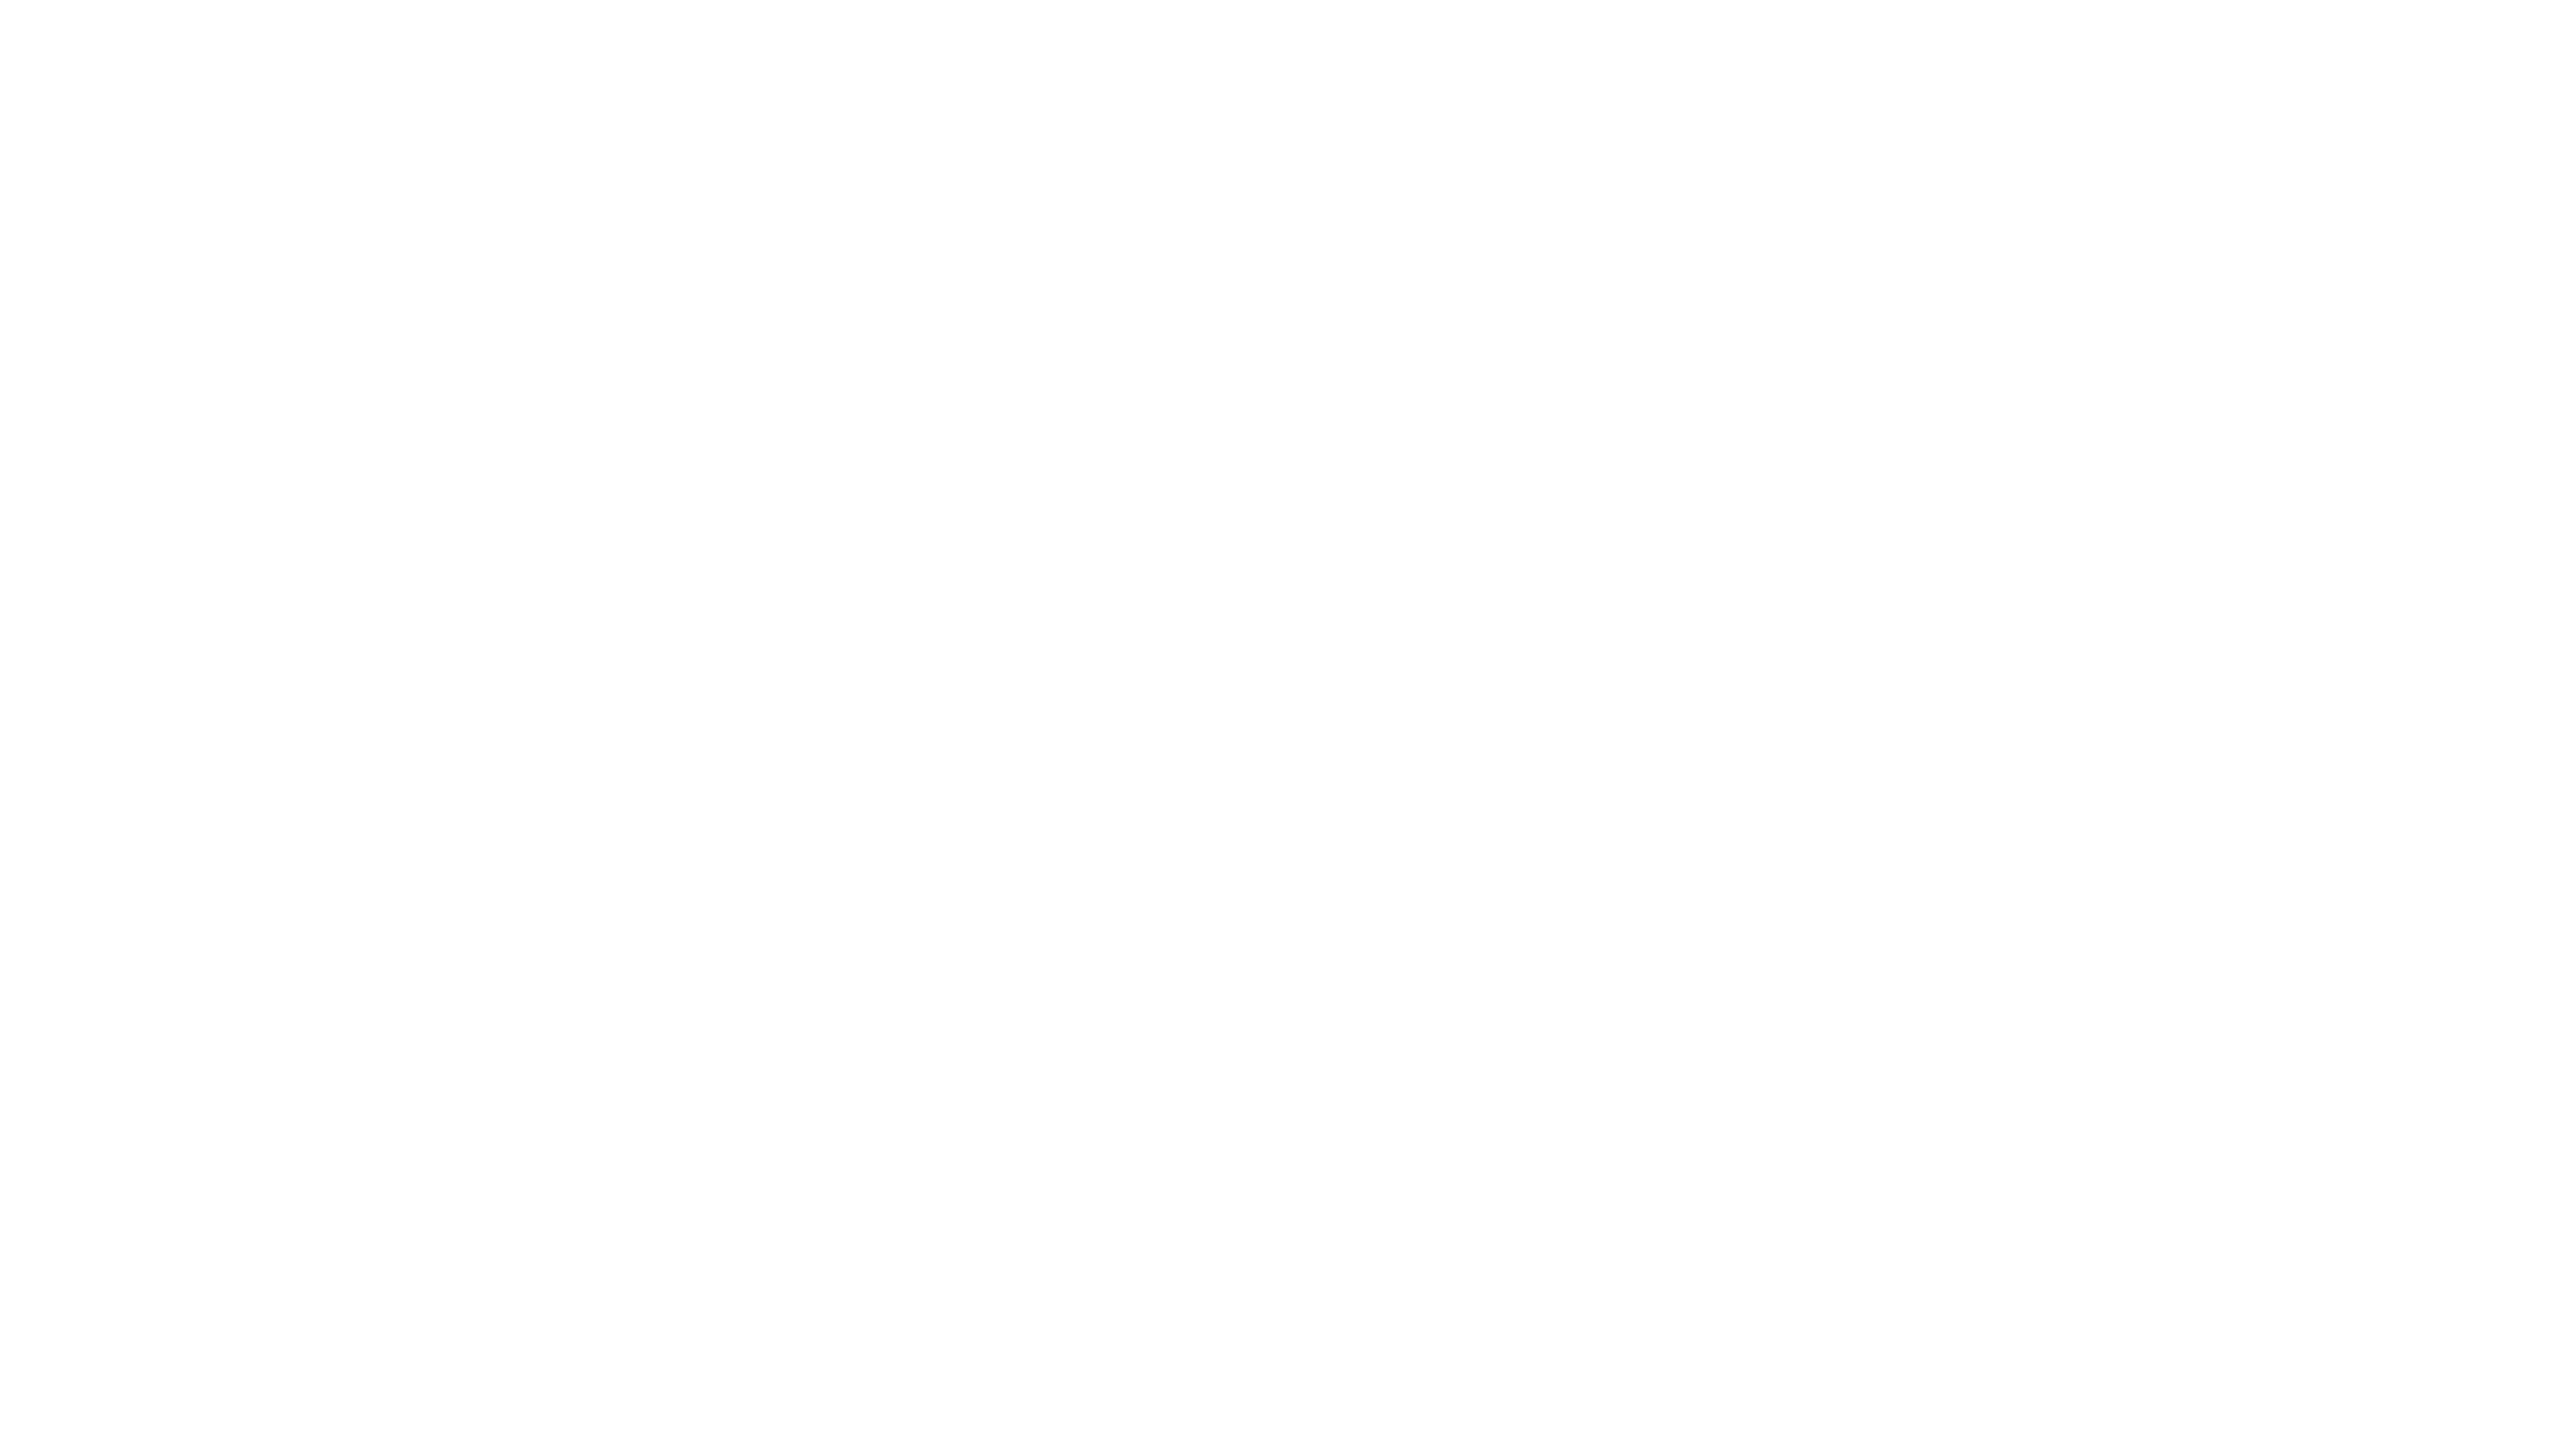 PORTIONCONTROLLED